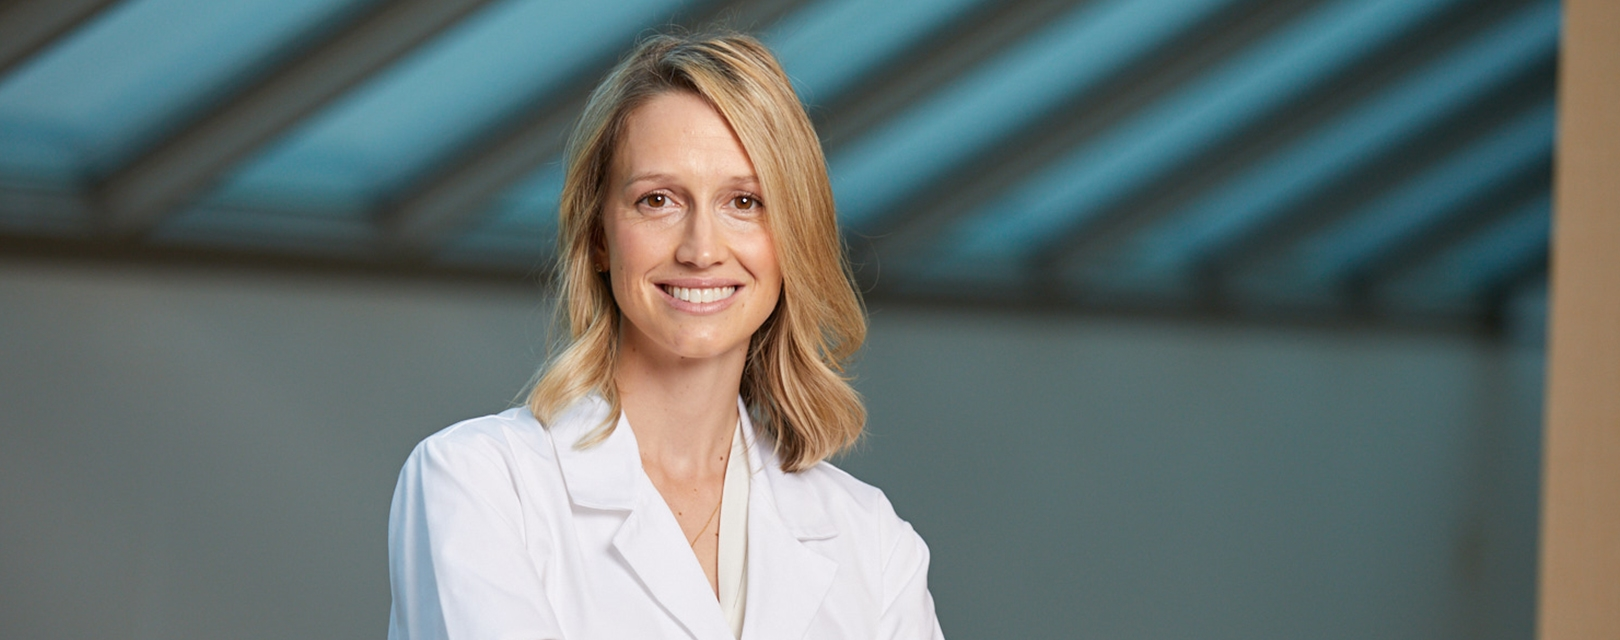 Rebecca Hogg, M.D., Jefferson City Medical Group